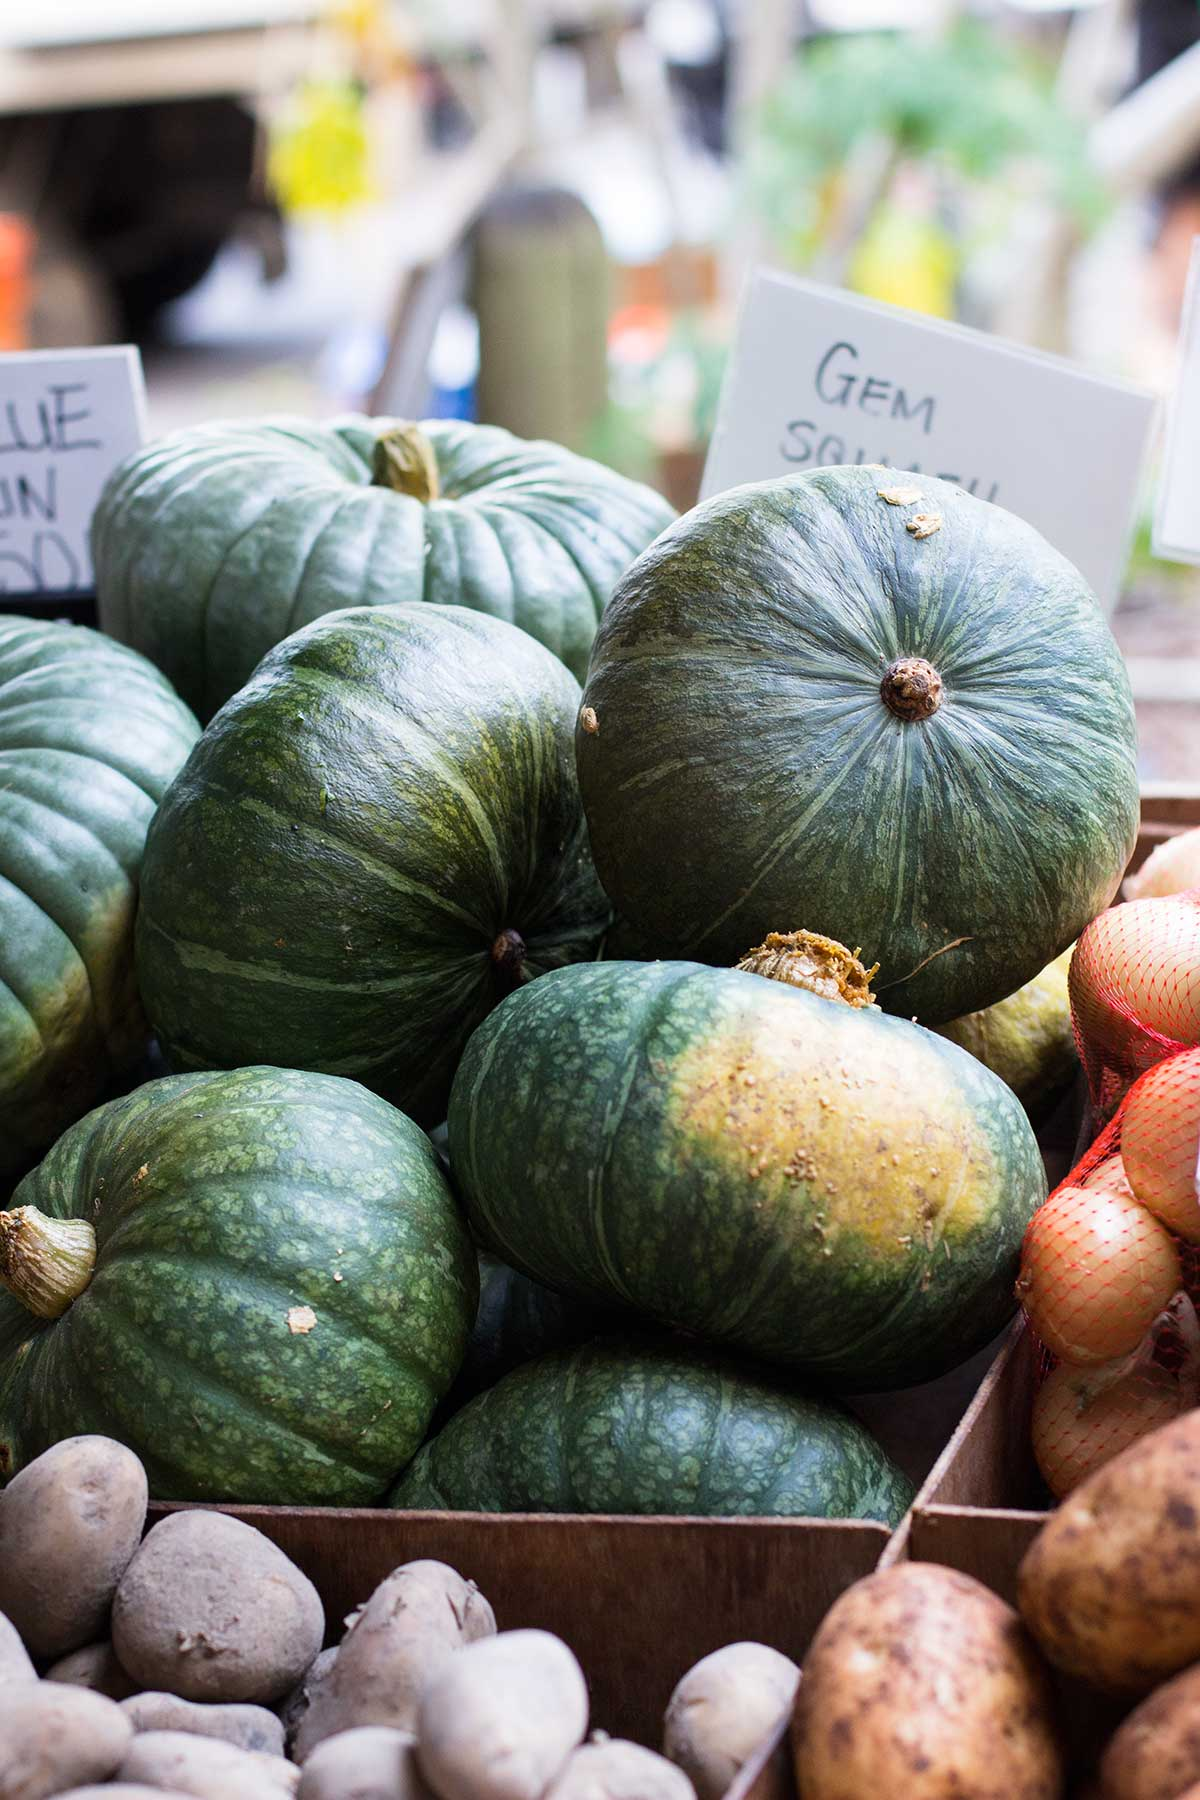 many kabocha squash on a shelf of a market